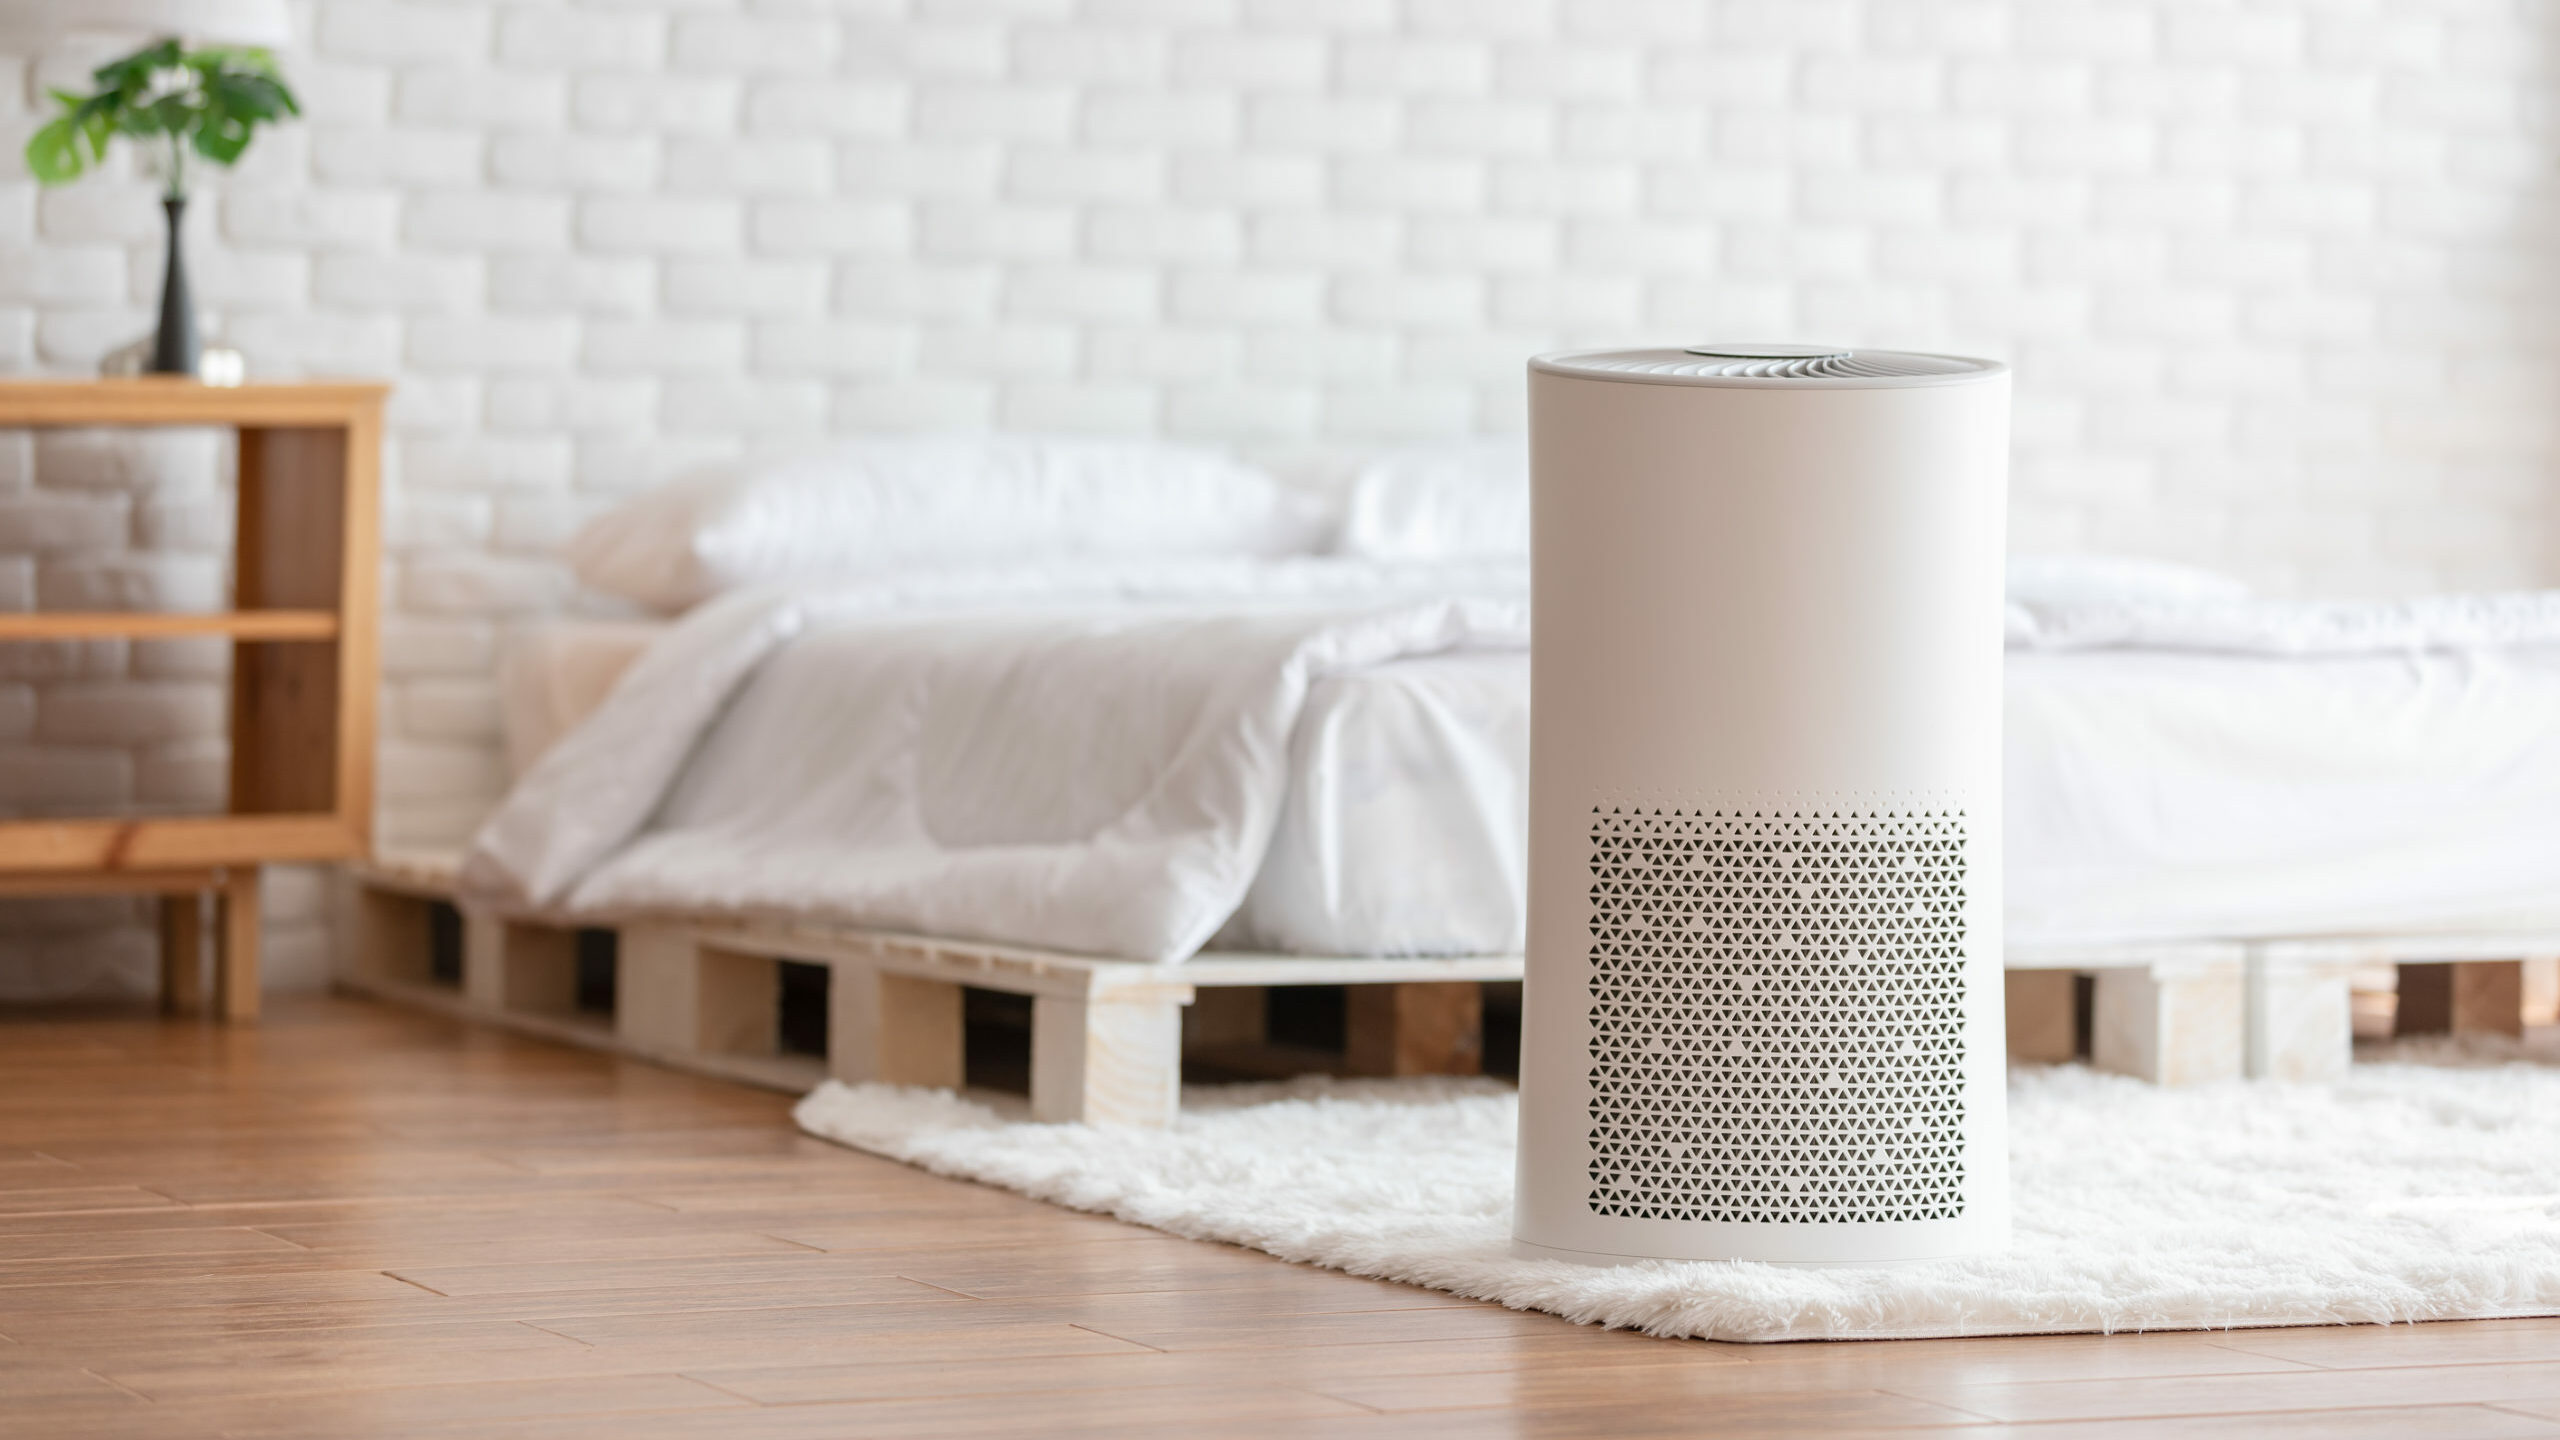 Wearable air purifiers—do they actually work, and should you buy one?